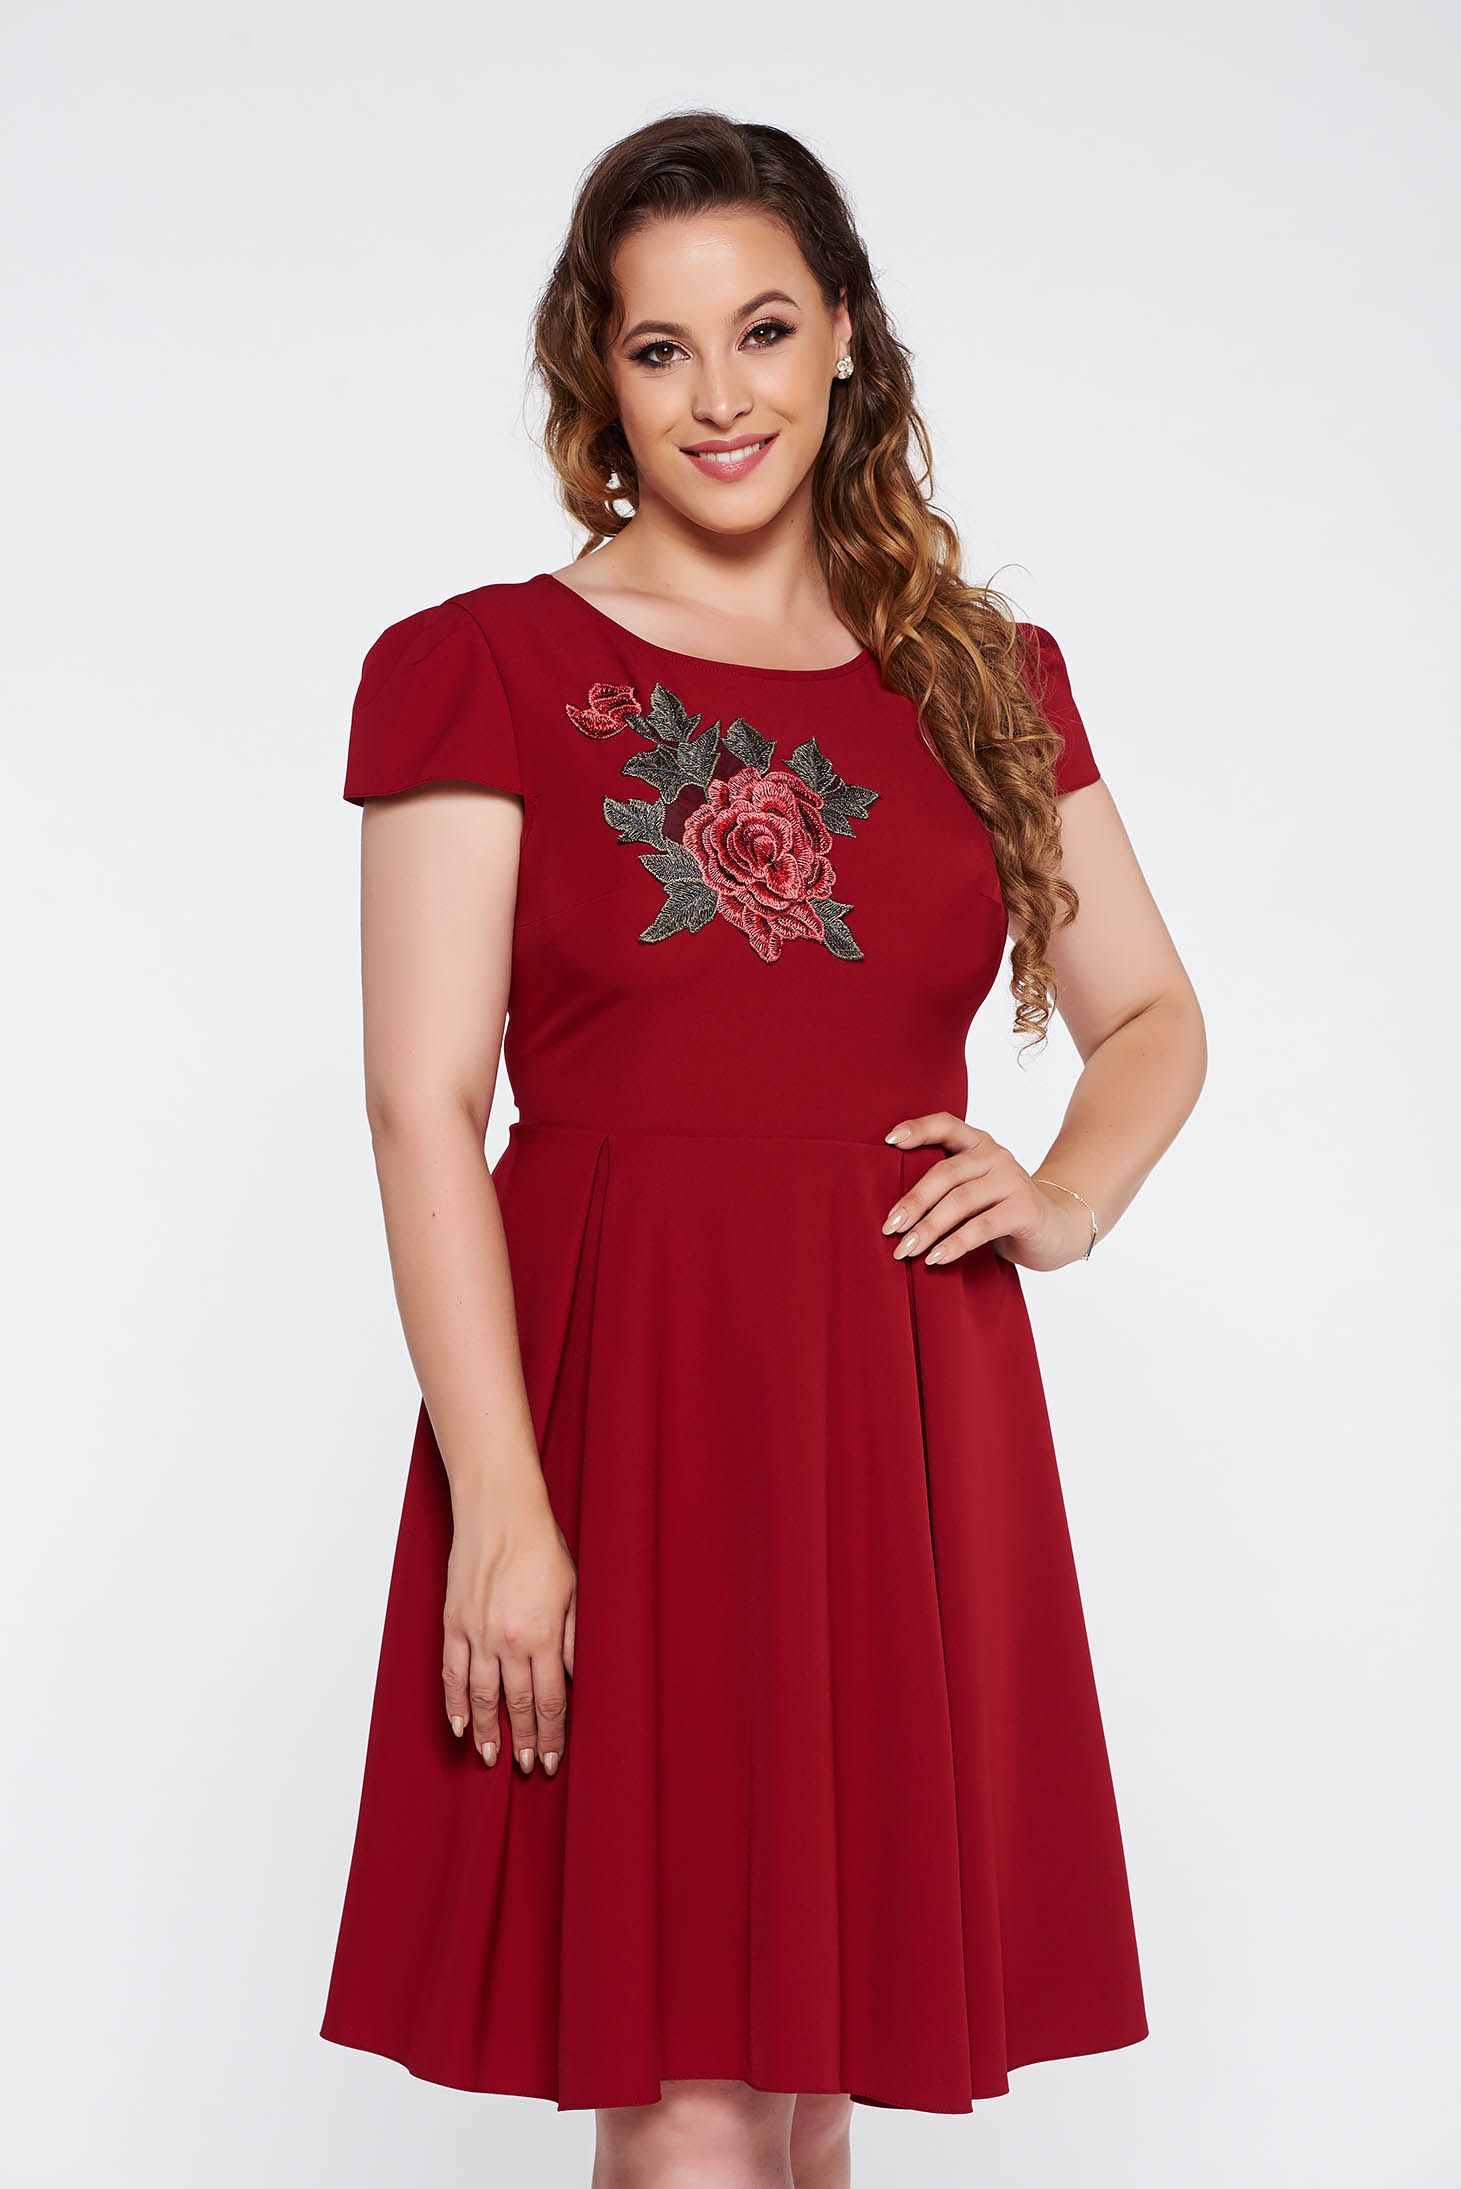 Burgundy elegant cloche dress slightly elastic fabric with embroidery details